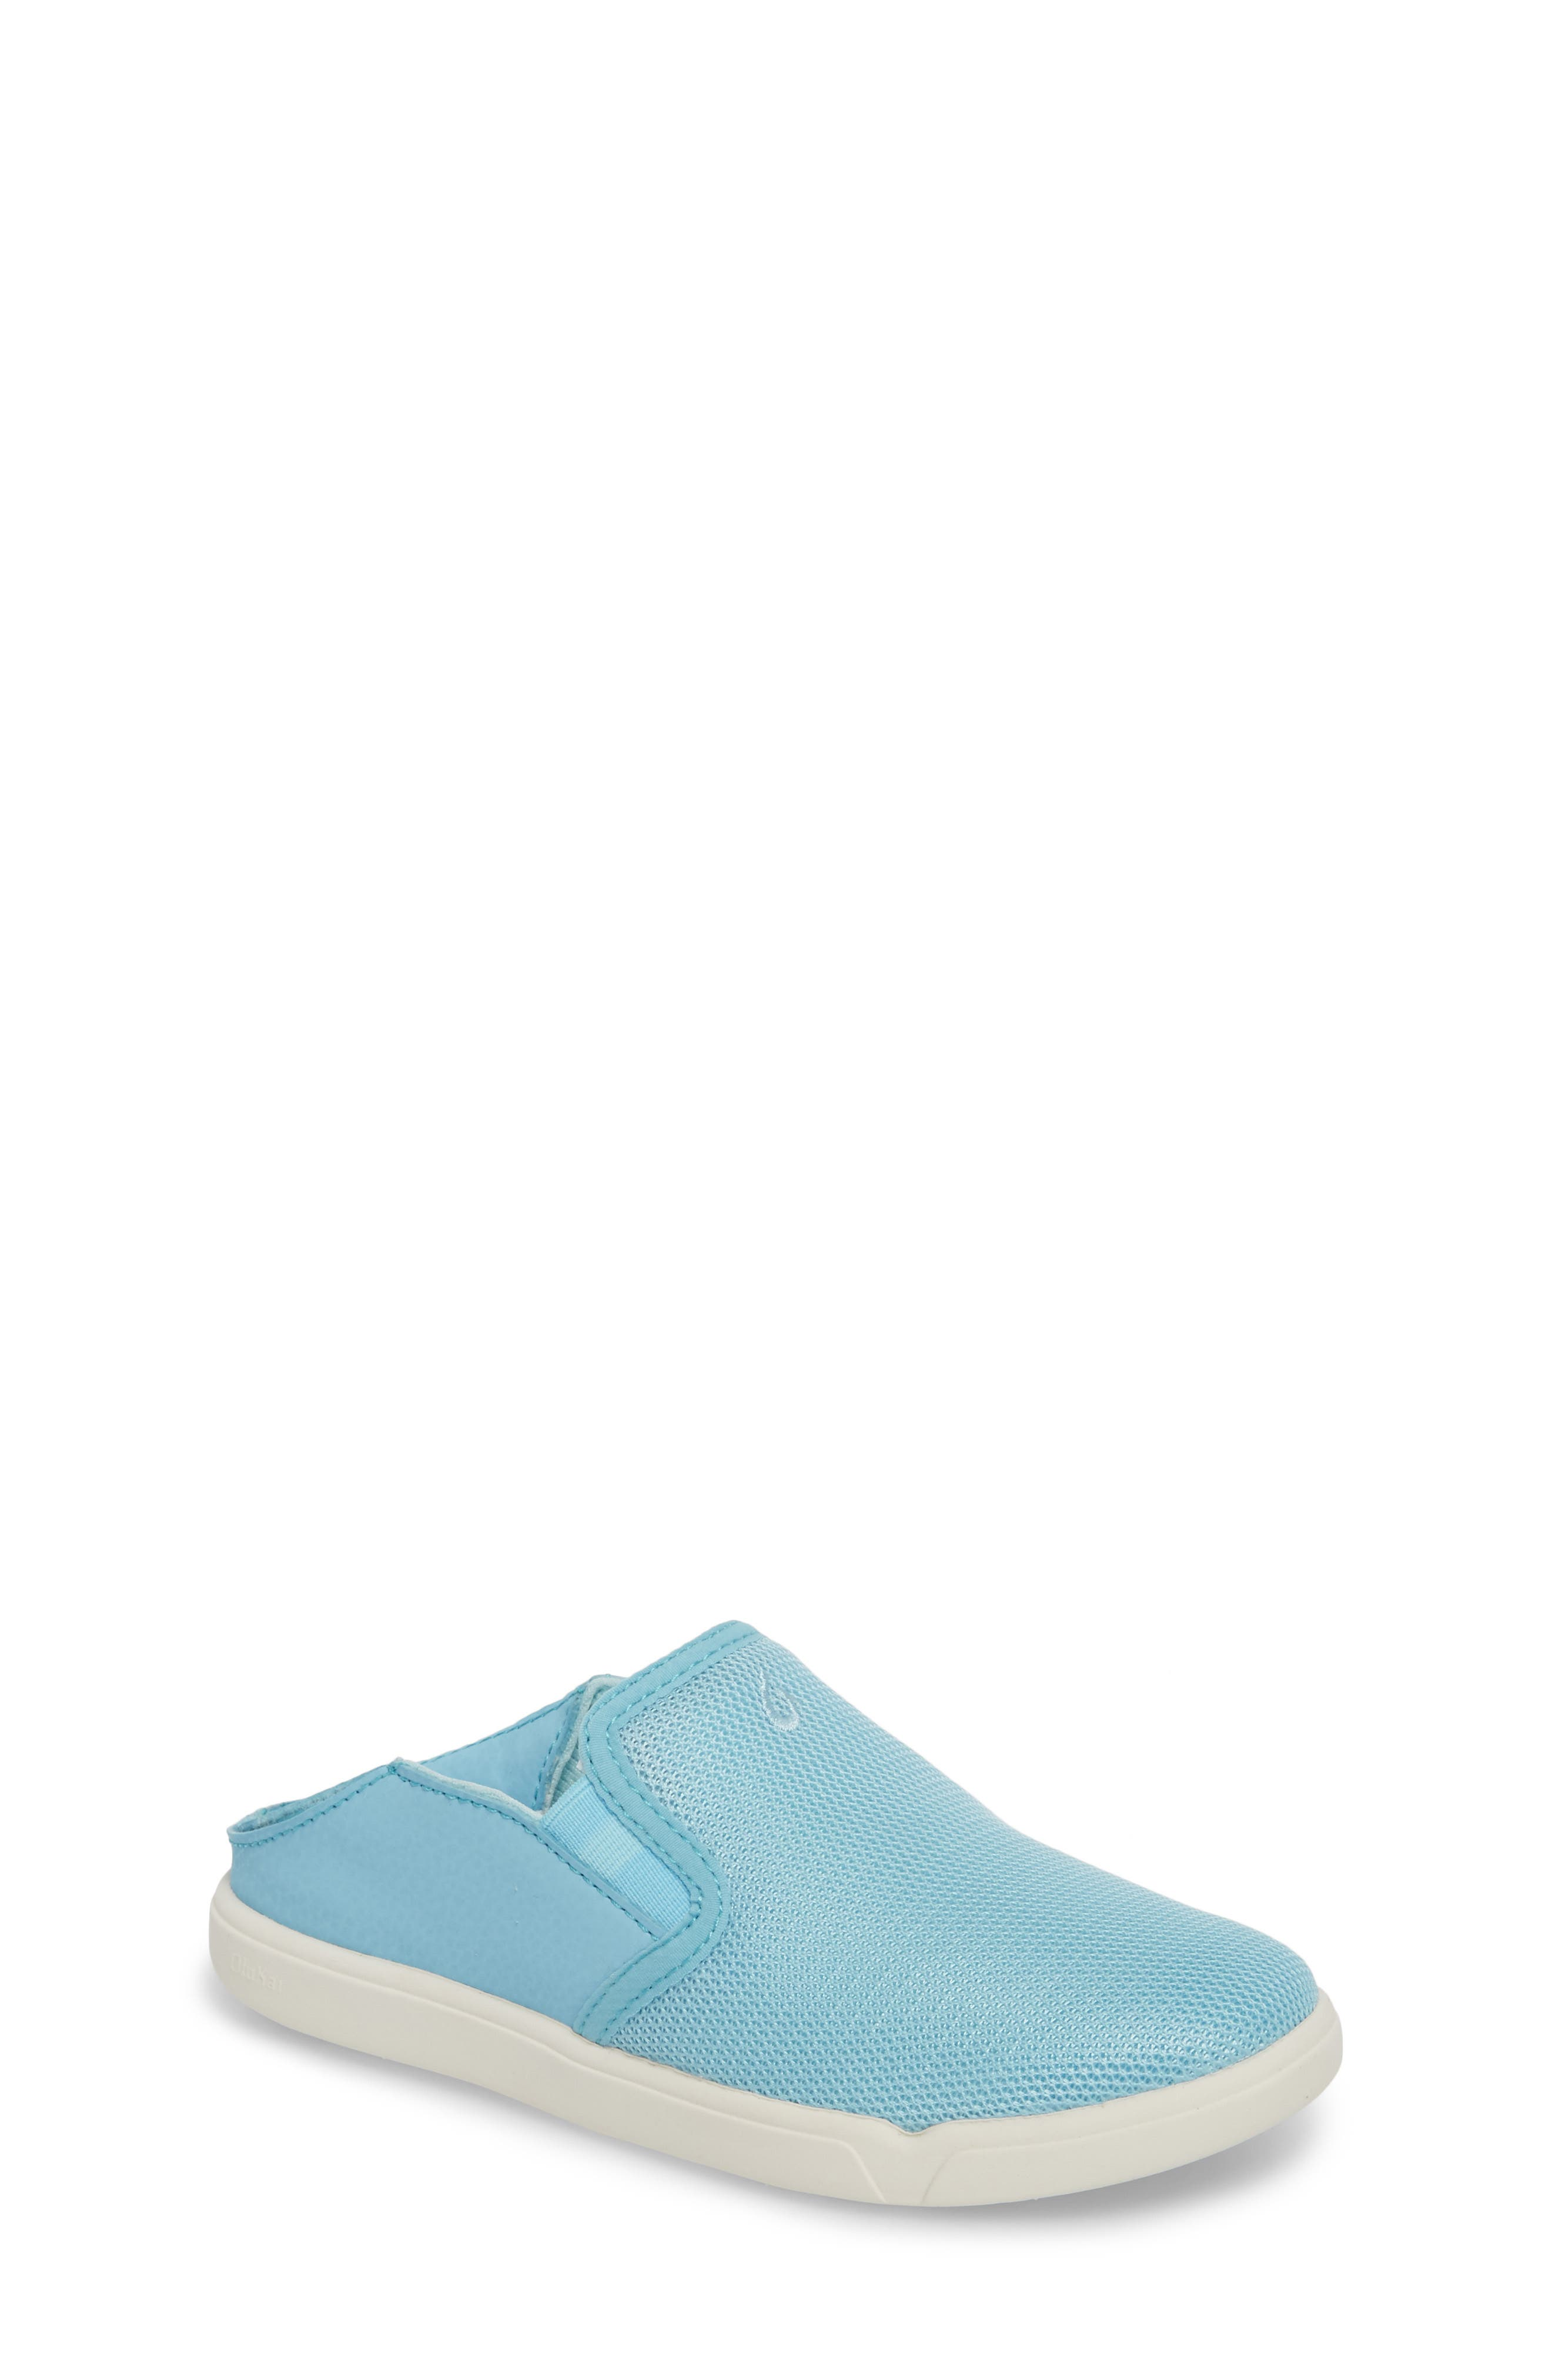 Pehuea Maka Collapsible Slip-On,                             Main thumbnail 1, color,                             Cotton Candy/ Clearwater